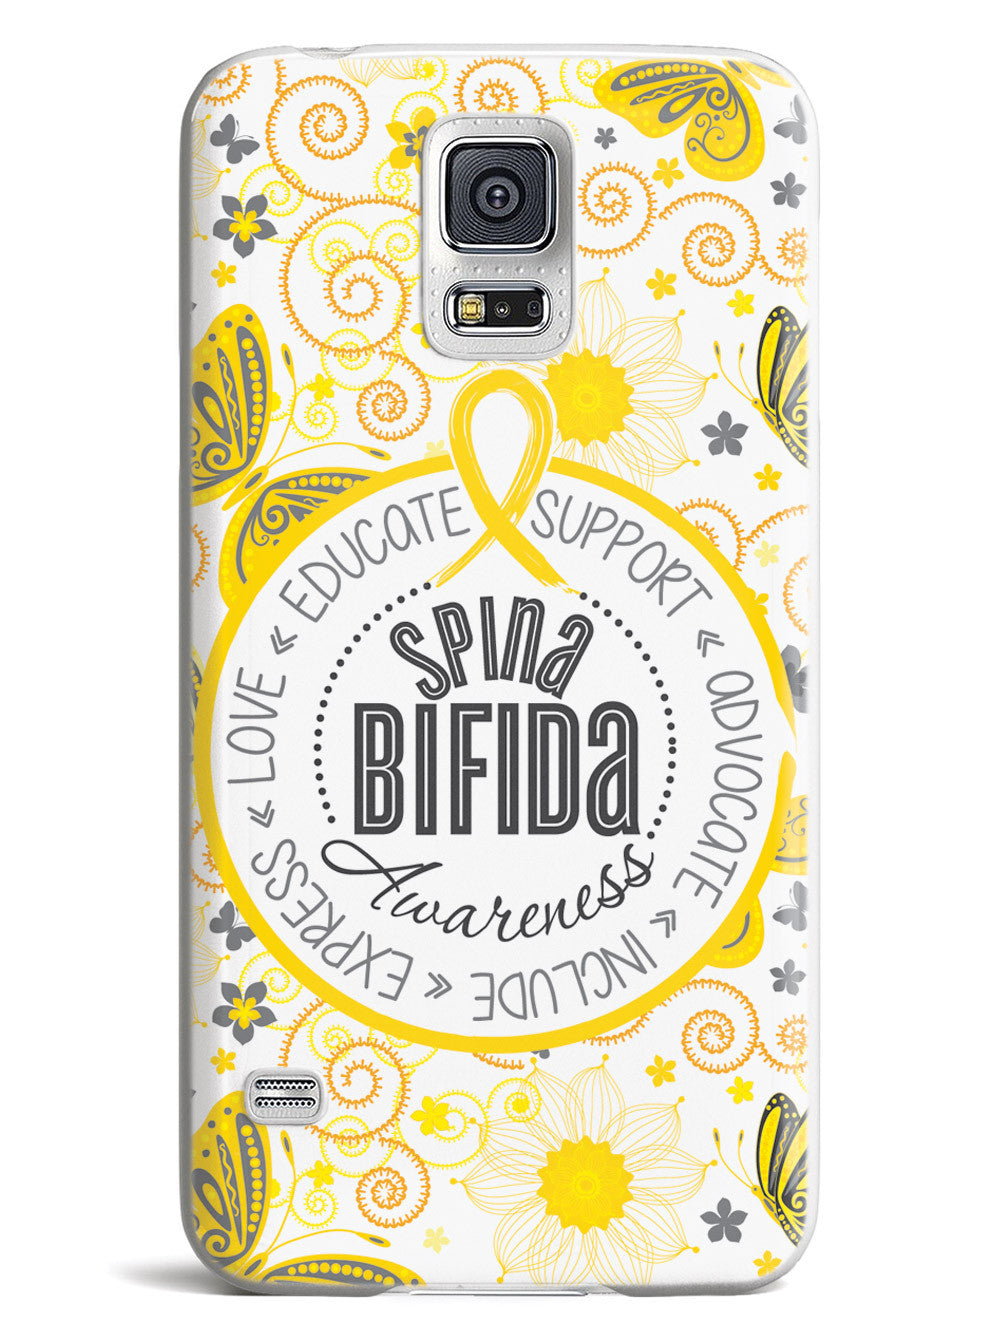 Spina Bifida Awareness Case